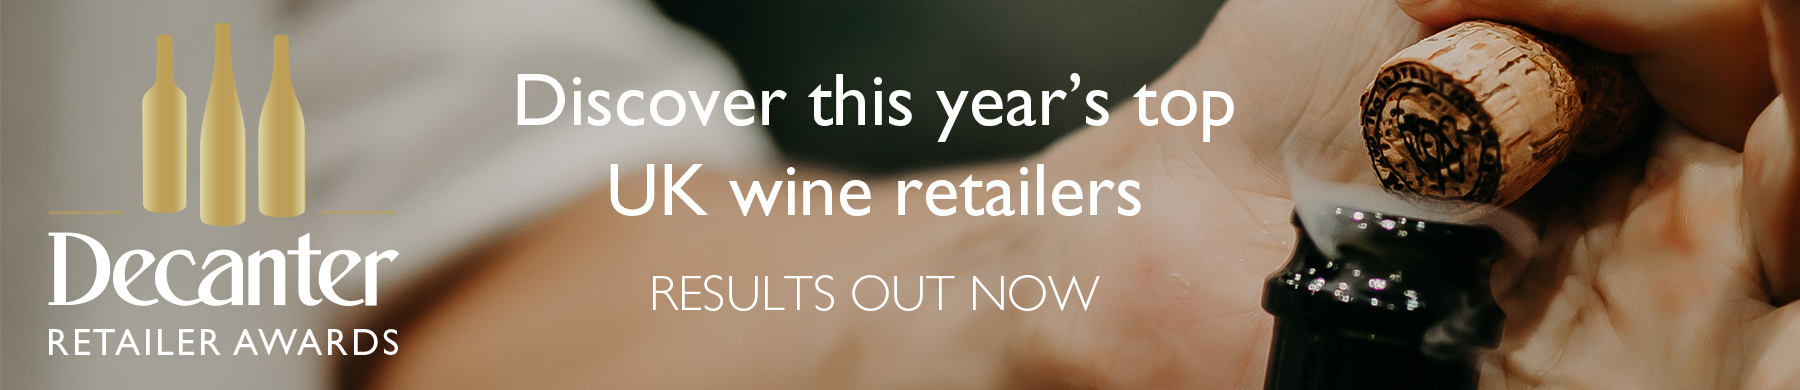 Decanter Retailer Awards 2019 winners announced